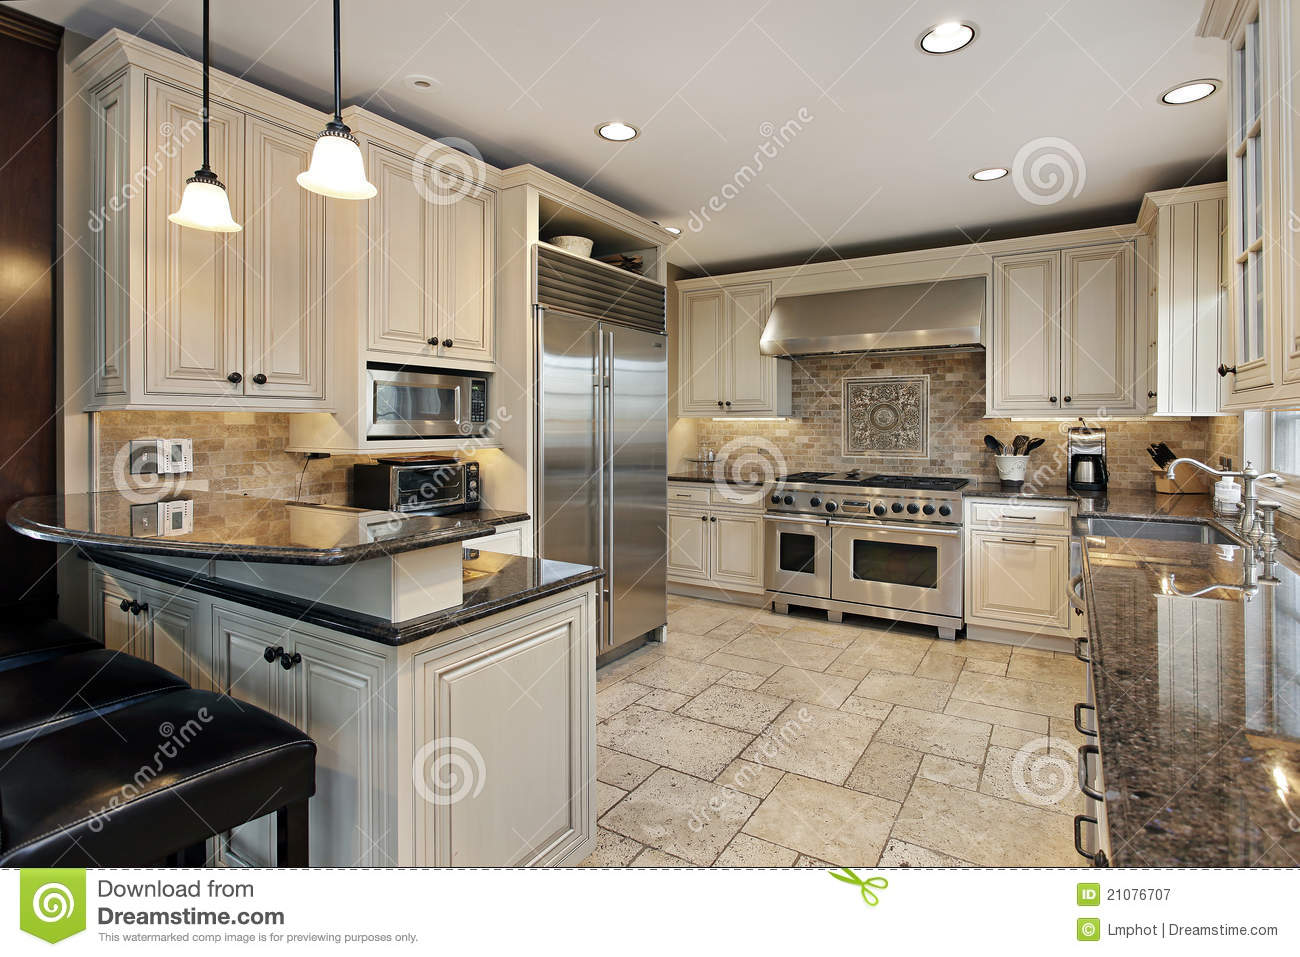 Upscale Kitchen With Breakfast Bar Royalty Free Stock